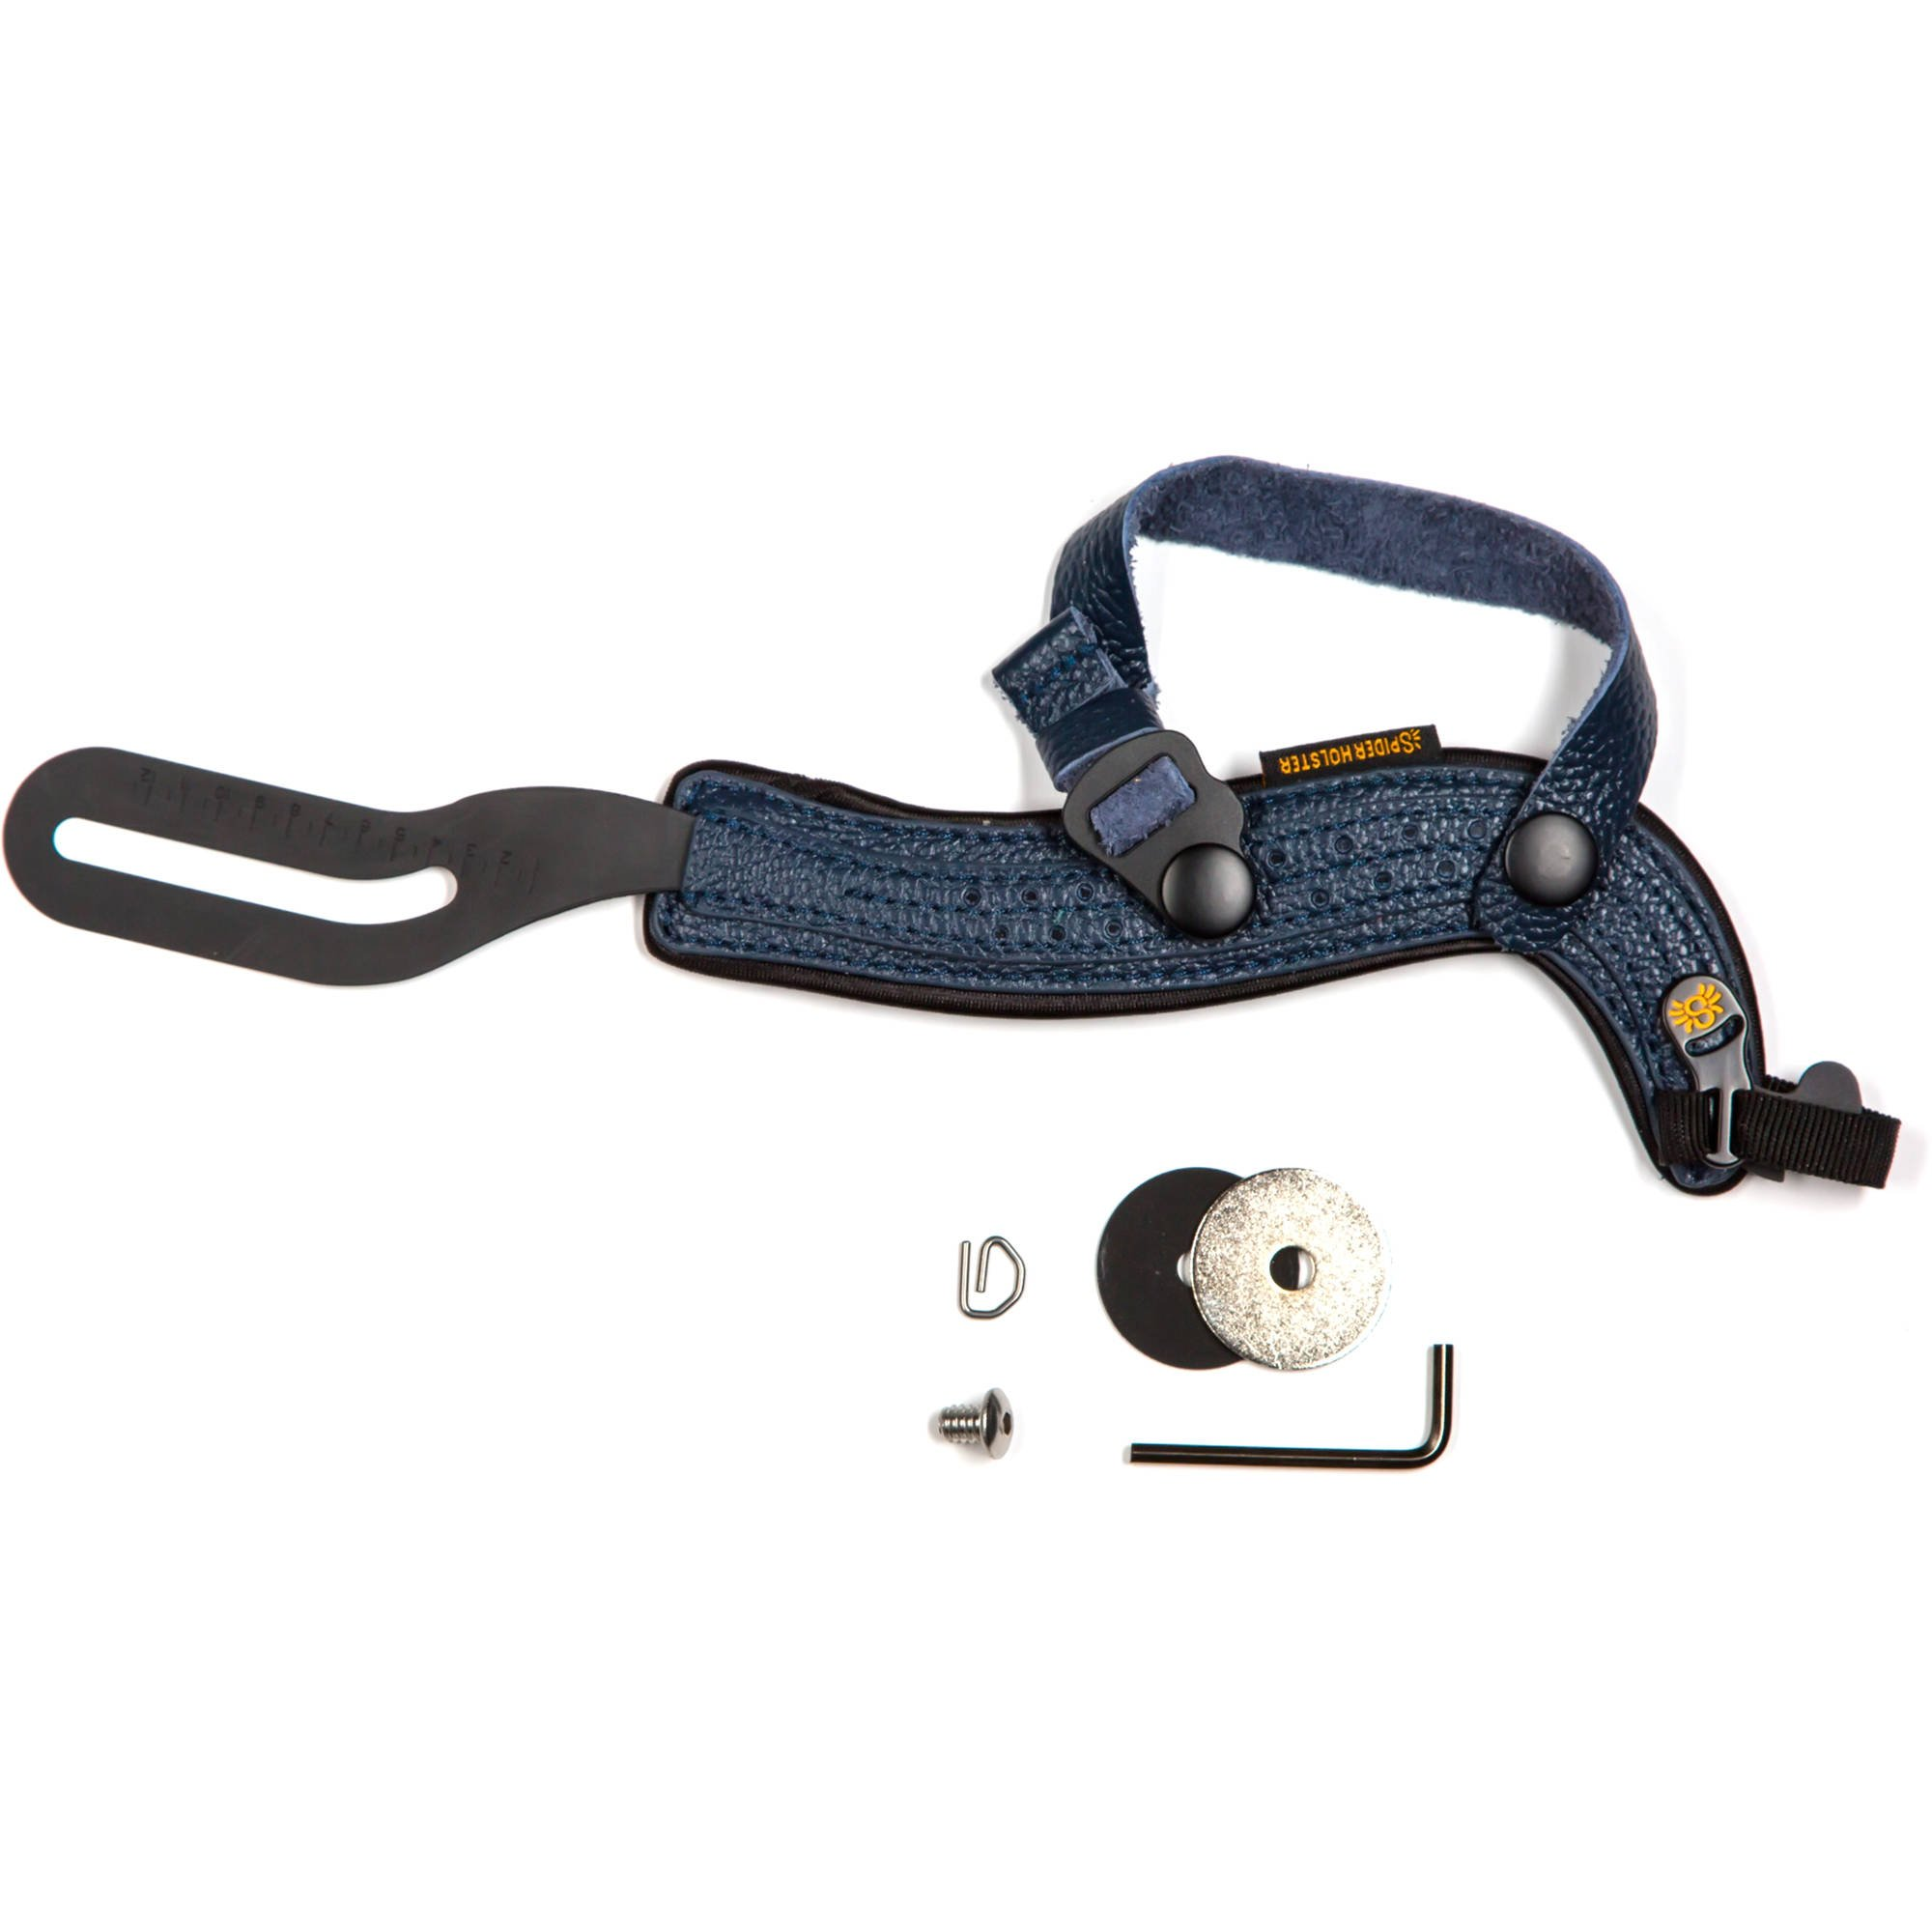 SpiderHolster SpiderPro Hand Strap for DSLR with Attached Lens, Dark Blue